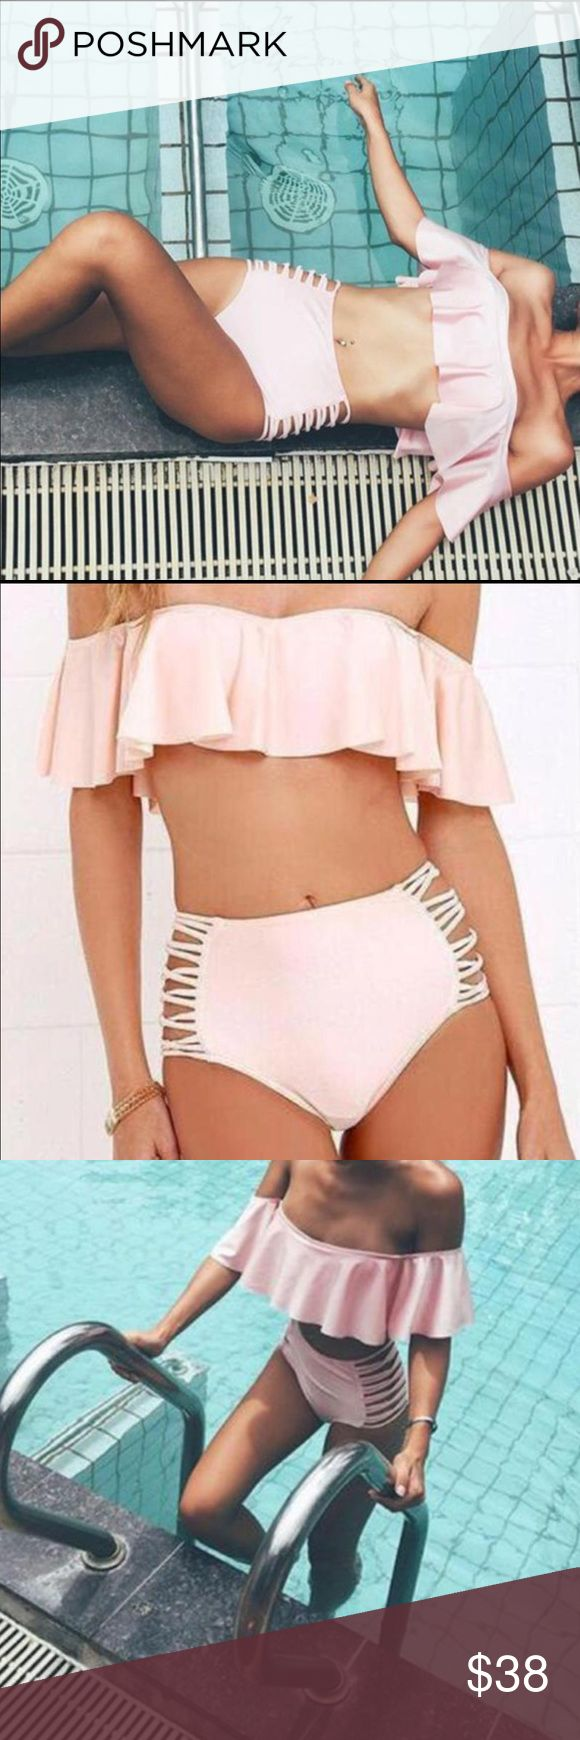 Sydney swimsuit I call her Sydney super cute and chic pastel pink bikini. Two piece high wasted with side cutouts. Ruffle off the shoulder top. Swim Bikinis